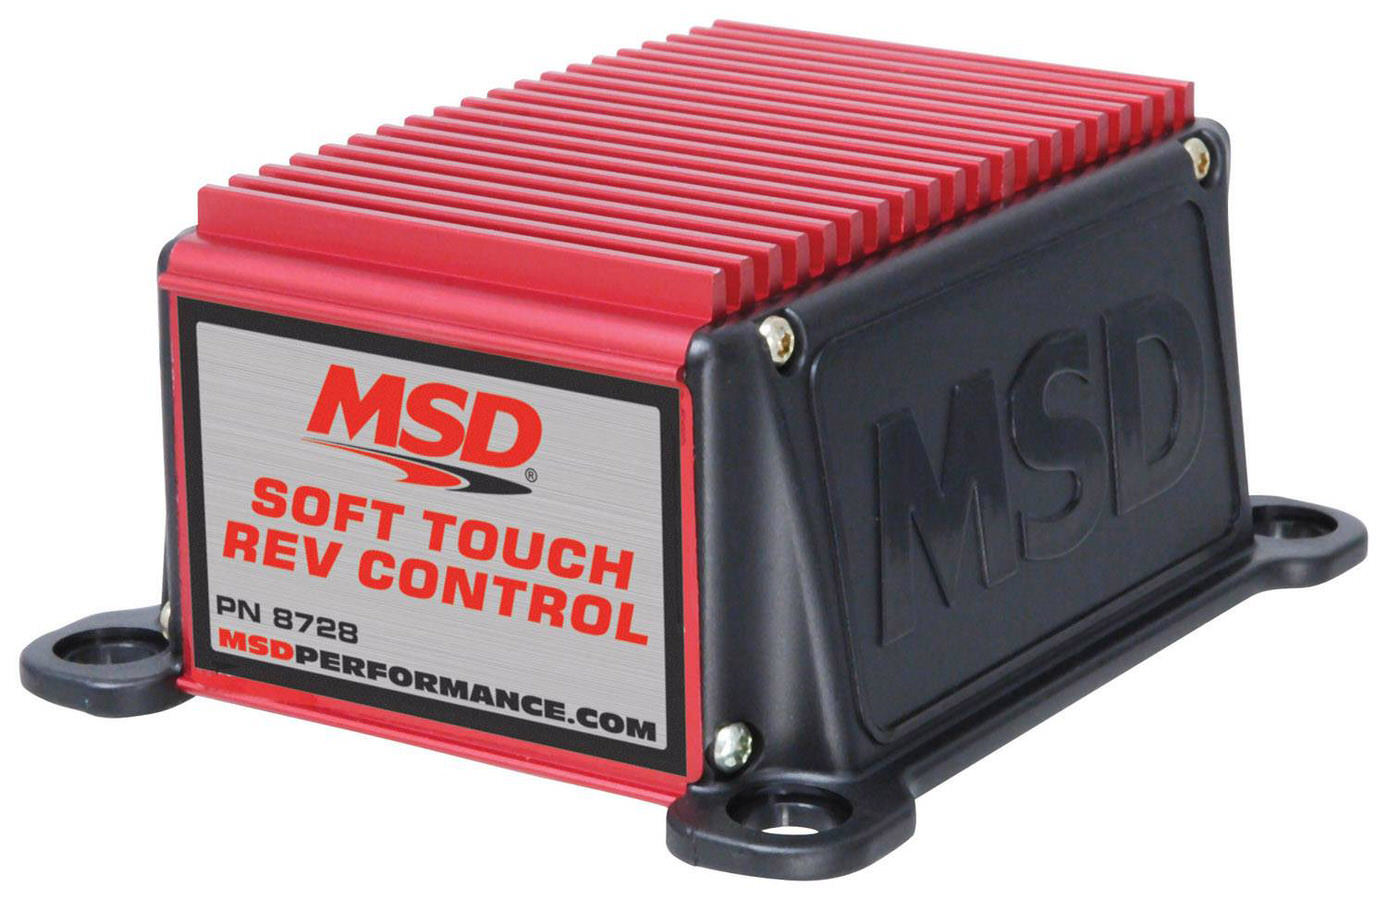 Msd Ignition Soft Touch Rev Control